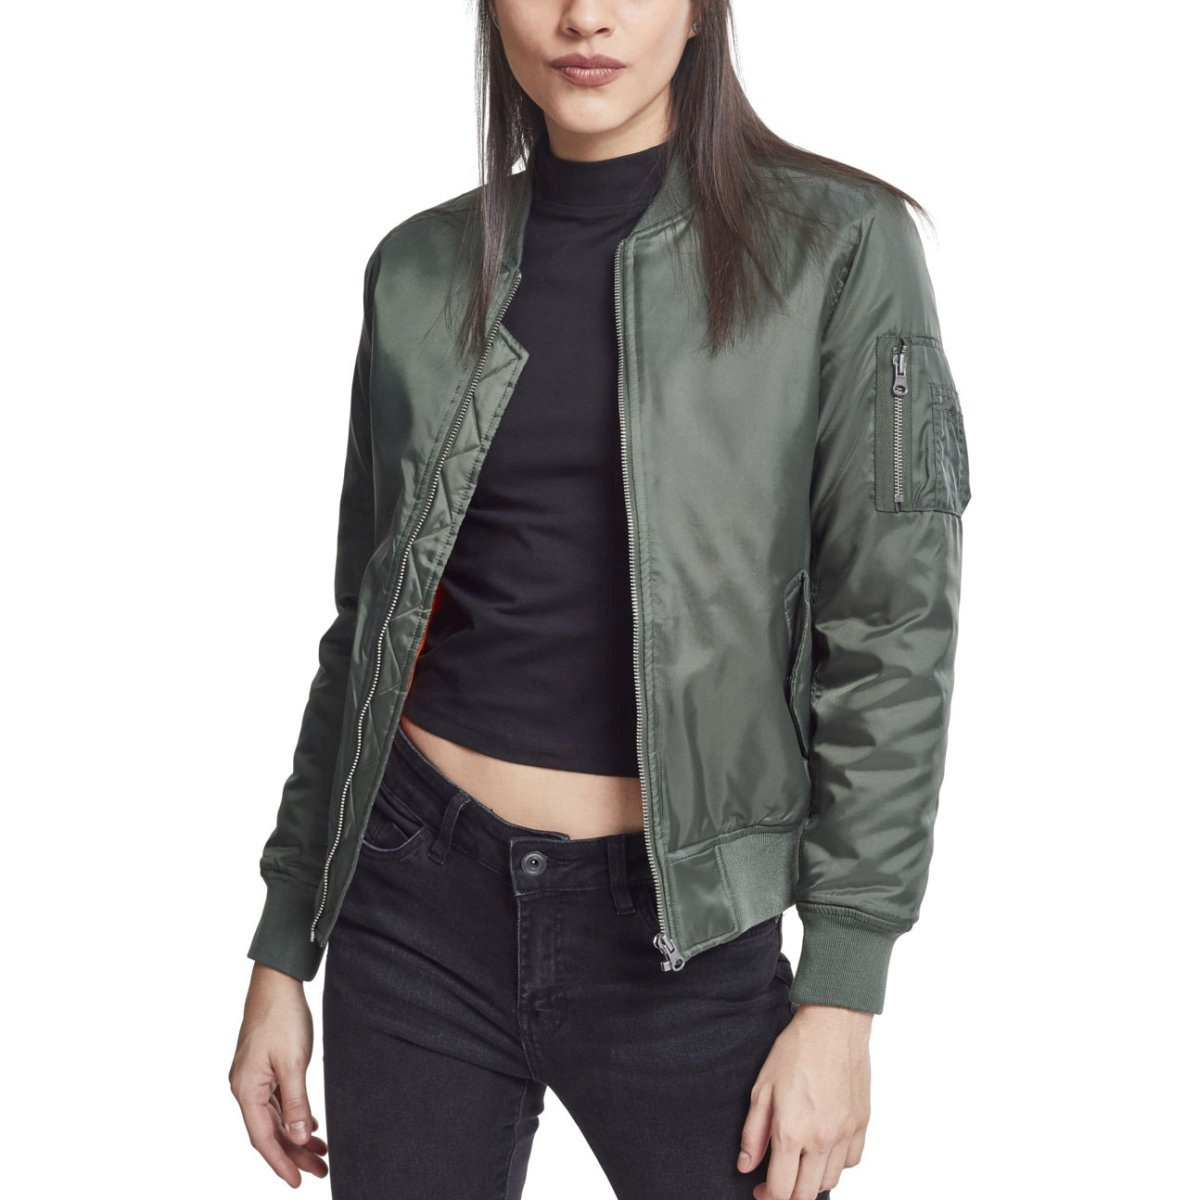 31aeae5b Urban Classics Ladies' Basic Bomber Jacket Tb807 Olive S. About this  product. Picture 1 of 6; Picture 2 of 6; Picture 3 of 6 ...